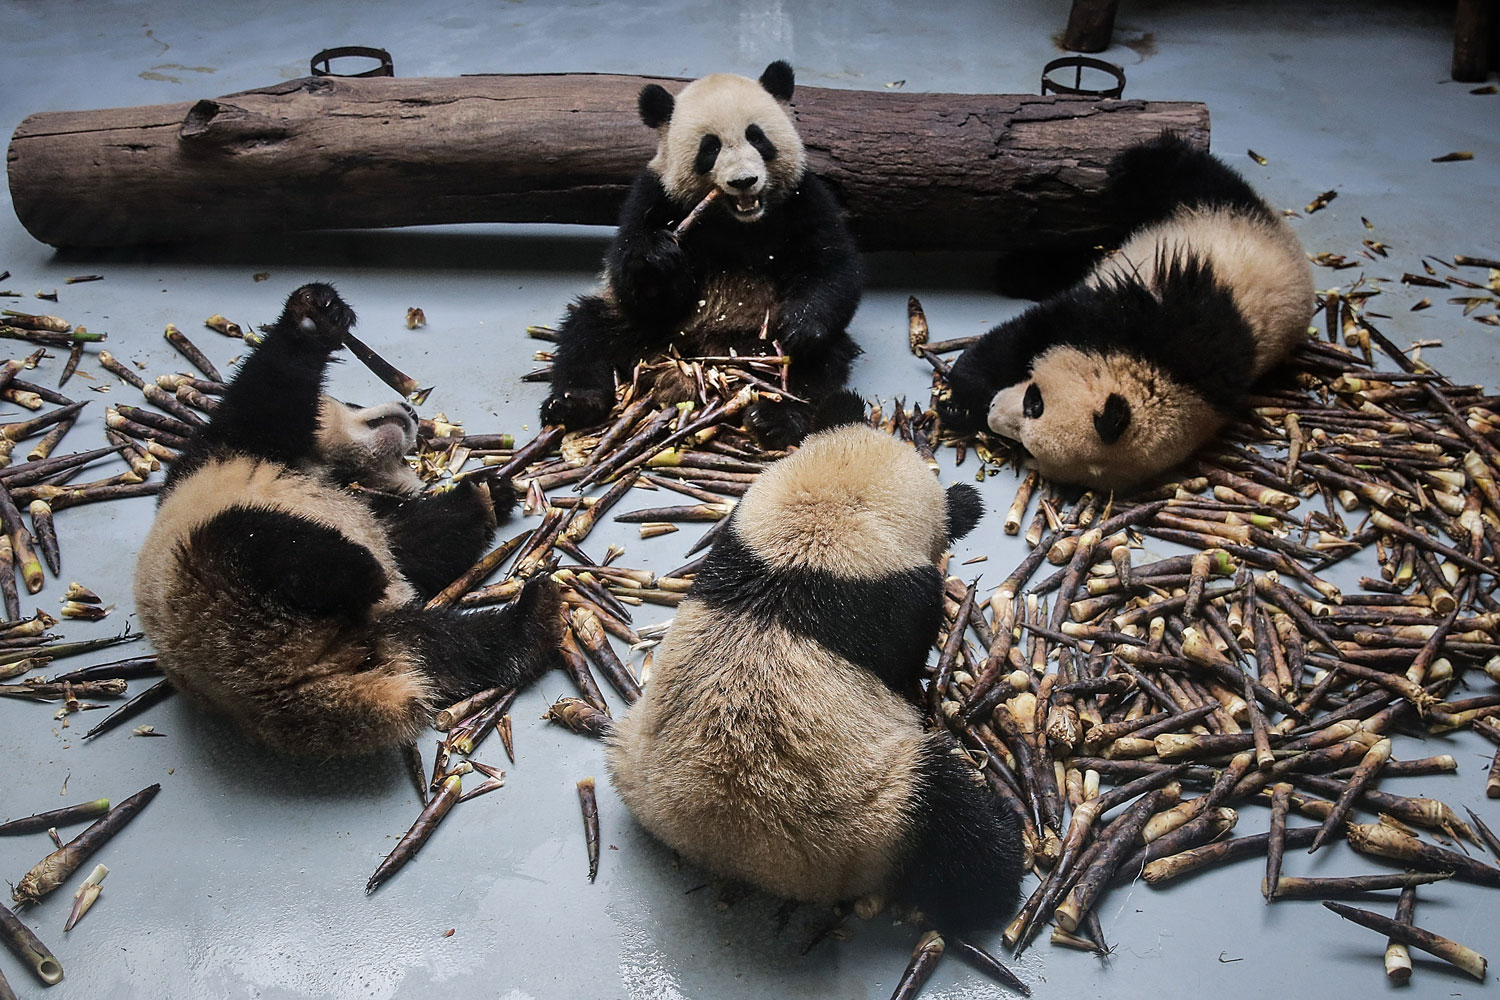 Pandas gnaw on bamboo shoots on April 3 at the Chengdu Giant Panda Breeding Research Base in Sichuan Province, China. Built in 1987, the facility cares for more than 100 giant pandas and aims to increase the captive population and ultimately reintroduce them to the wild. (Wang He/Getty Images)